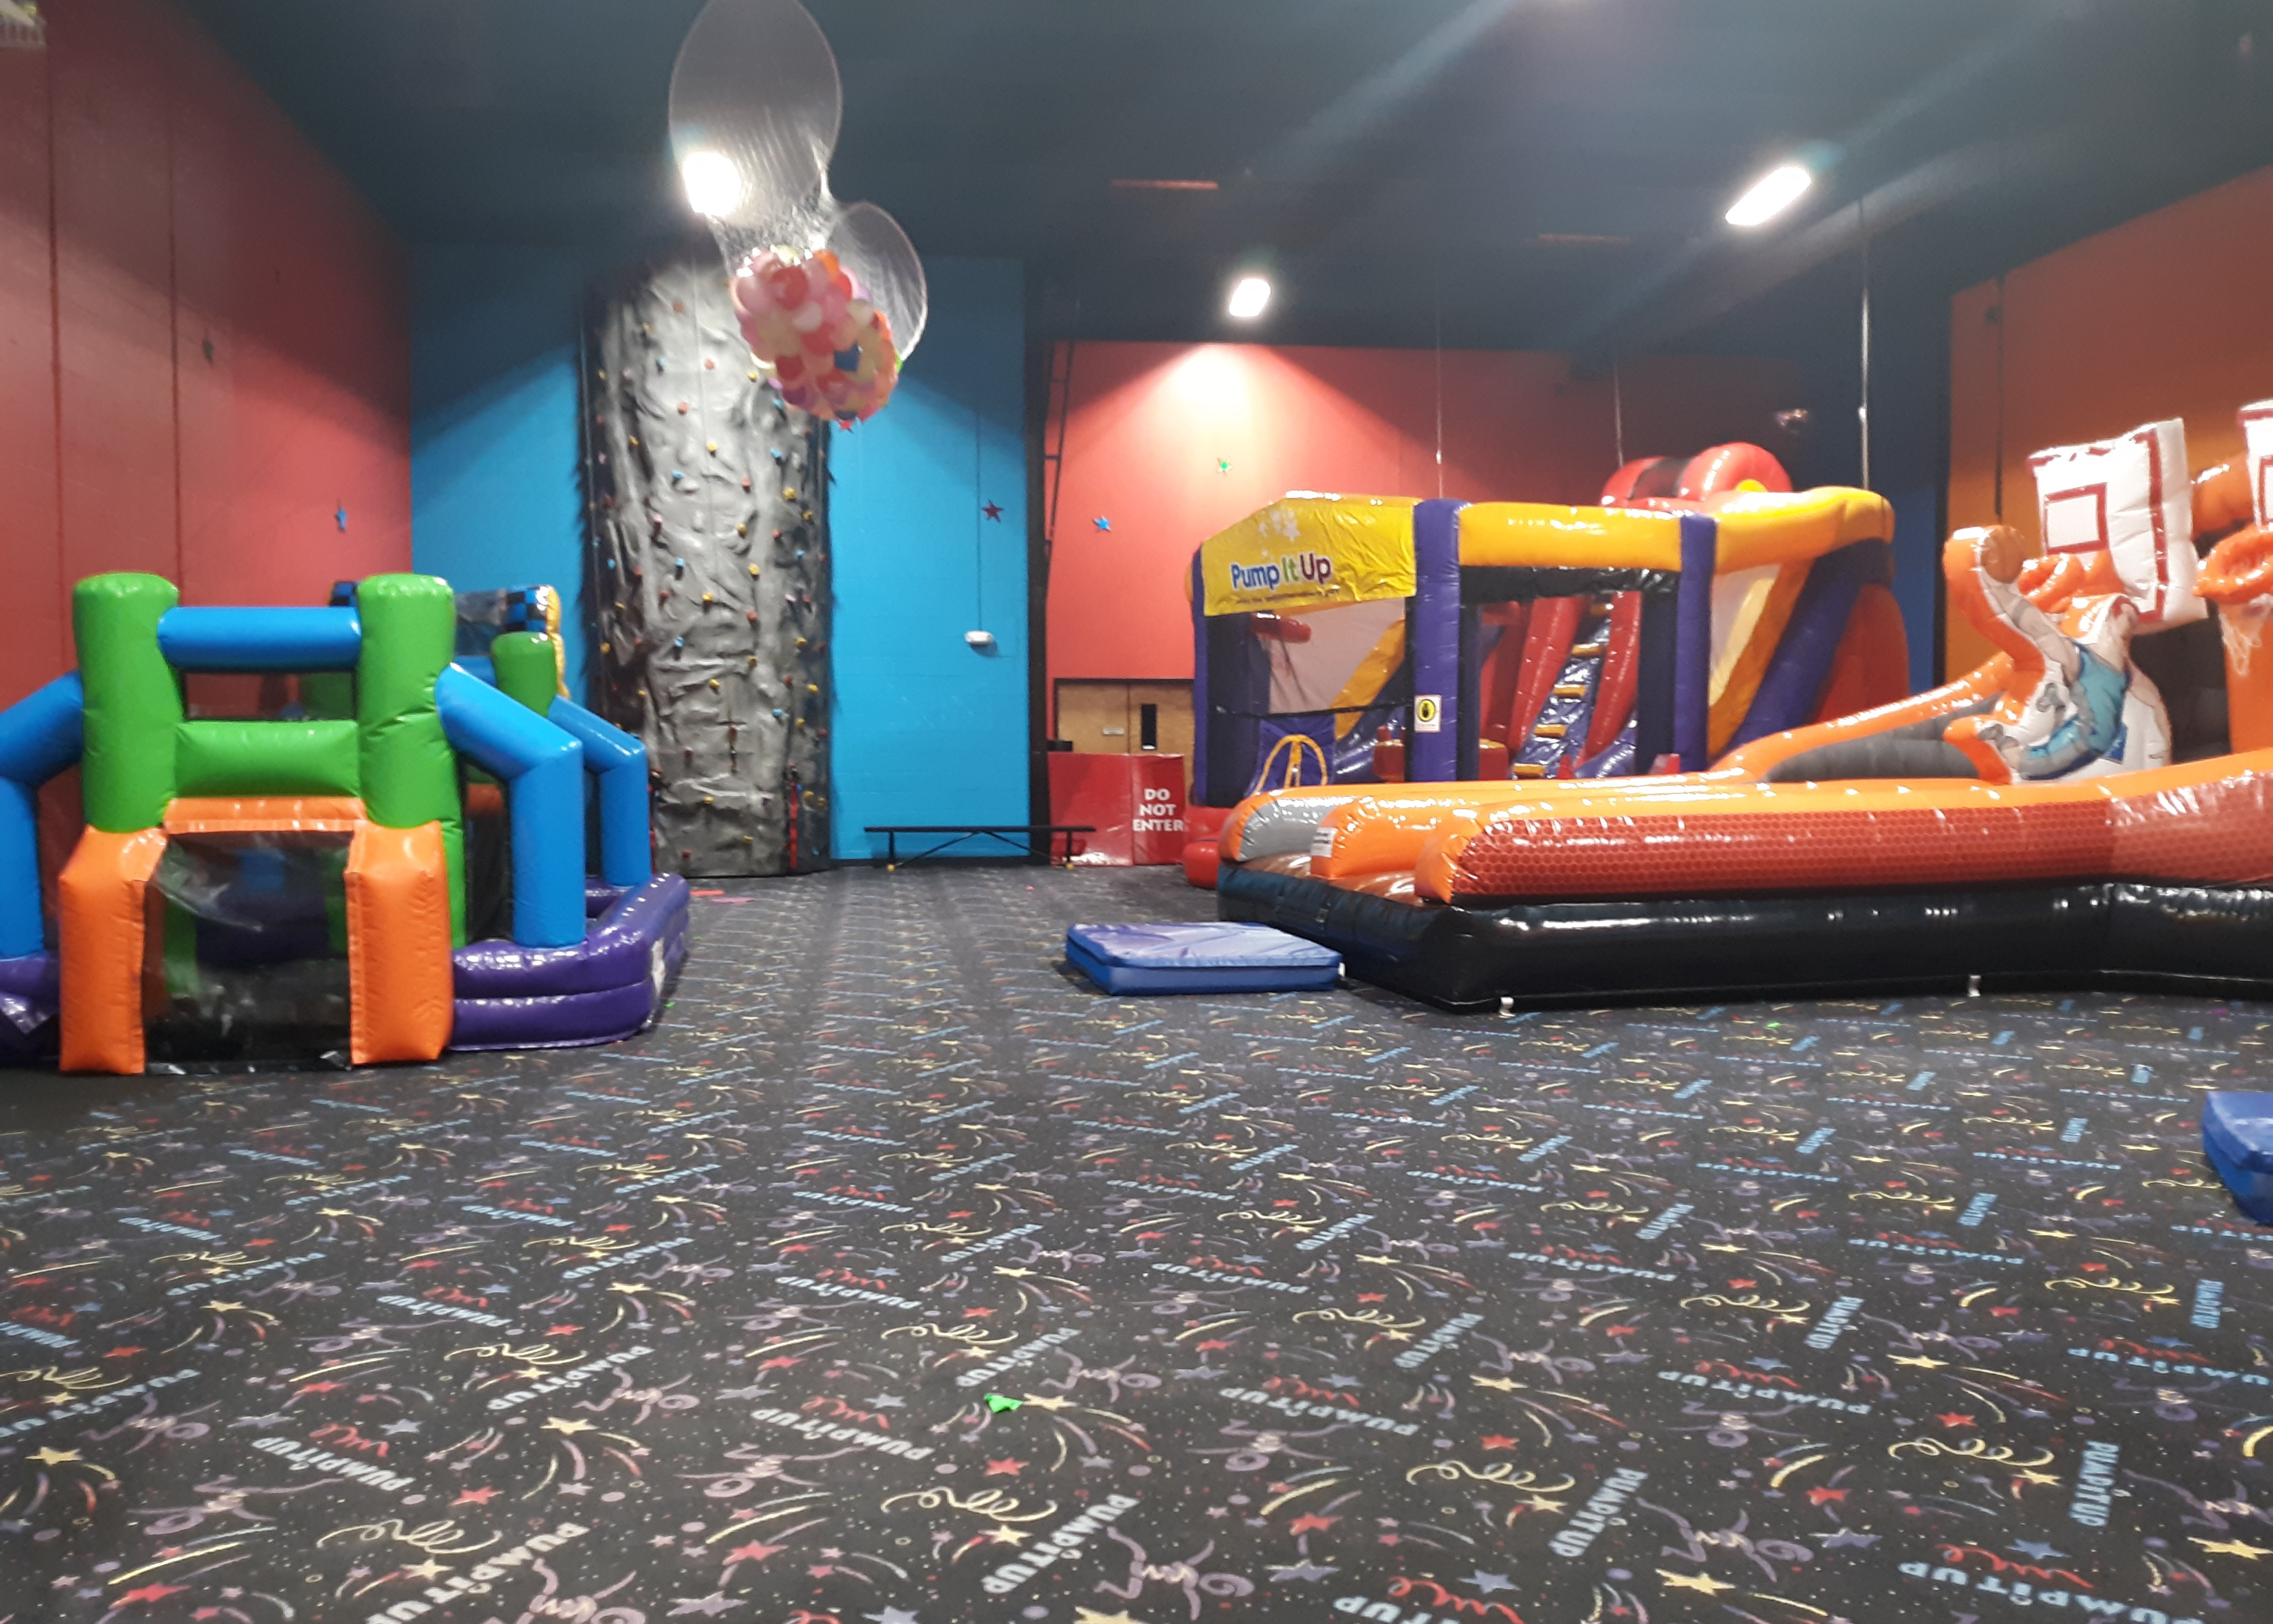 Pump It Up birthday party arena space with large inflatables, toddler area and rock climbing wall.